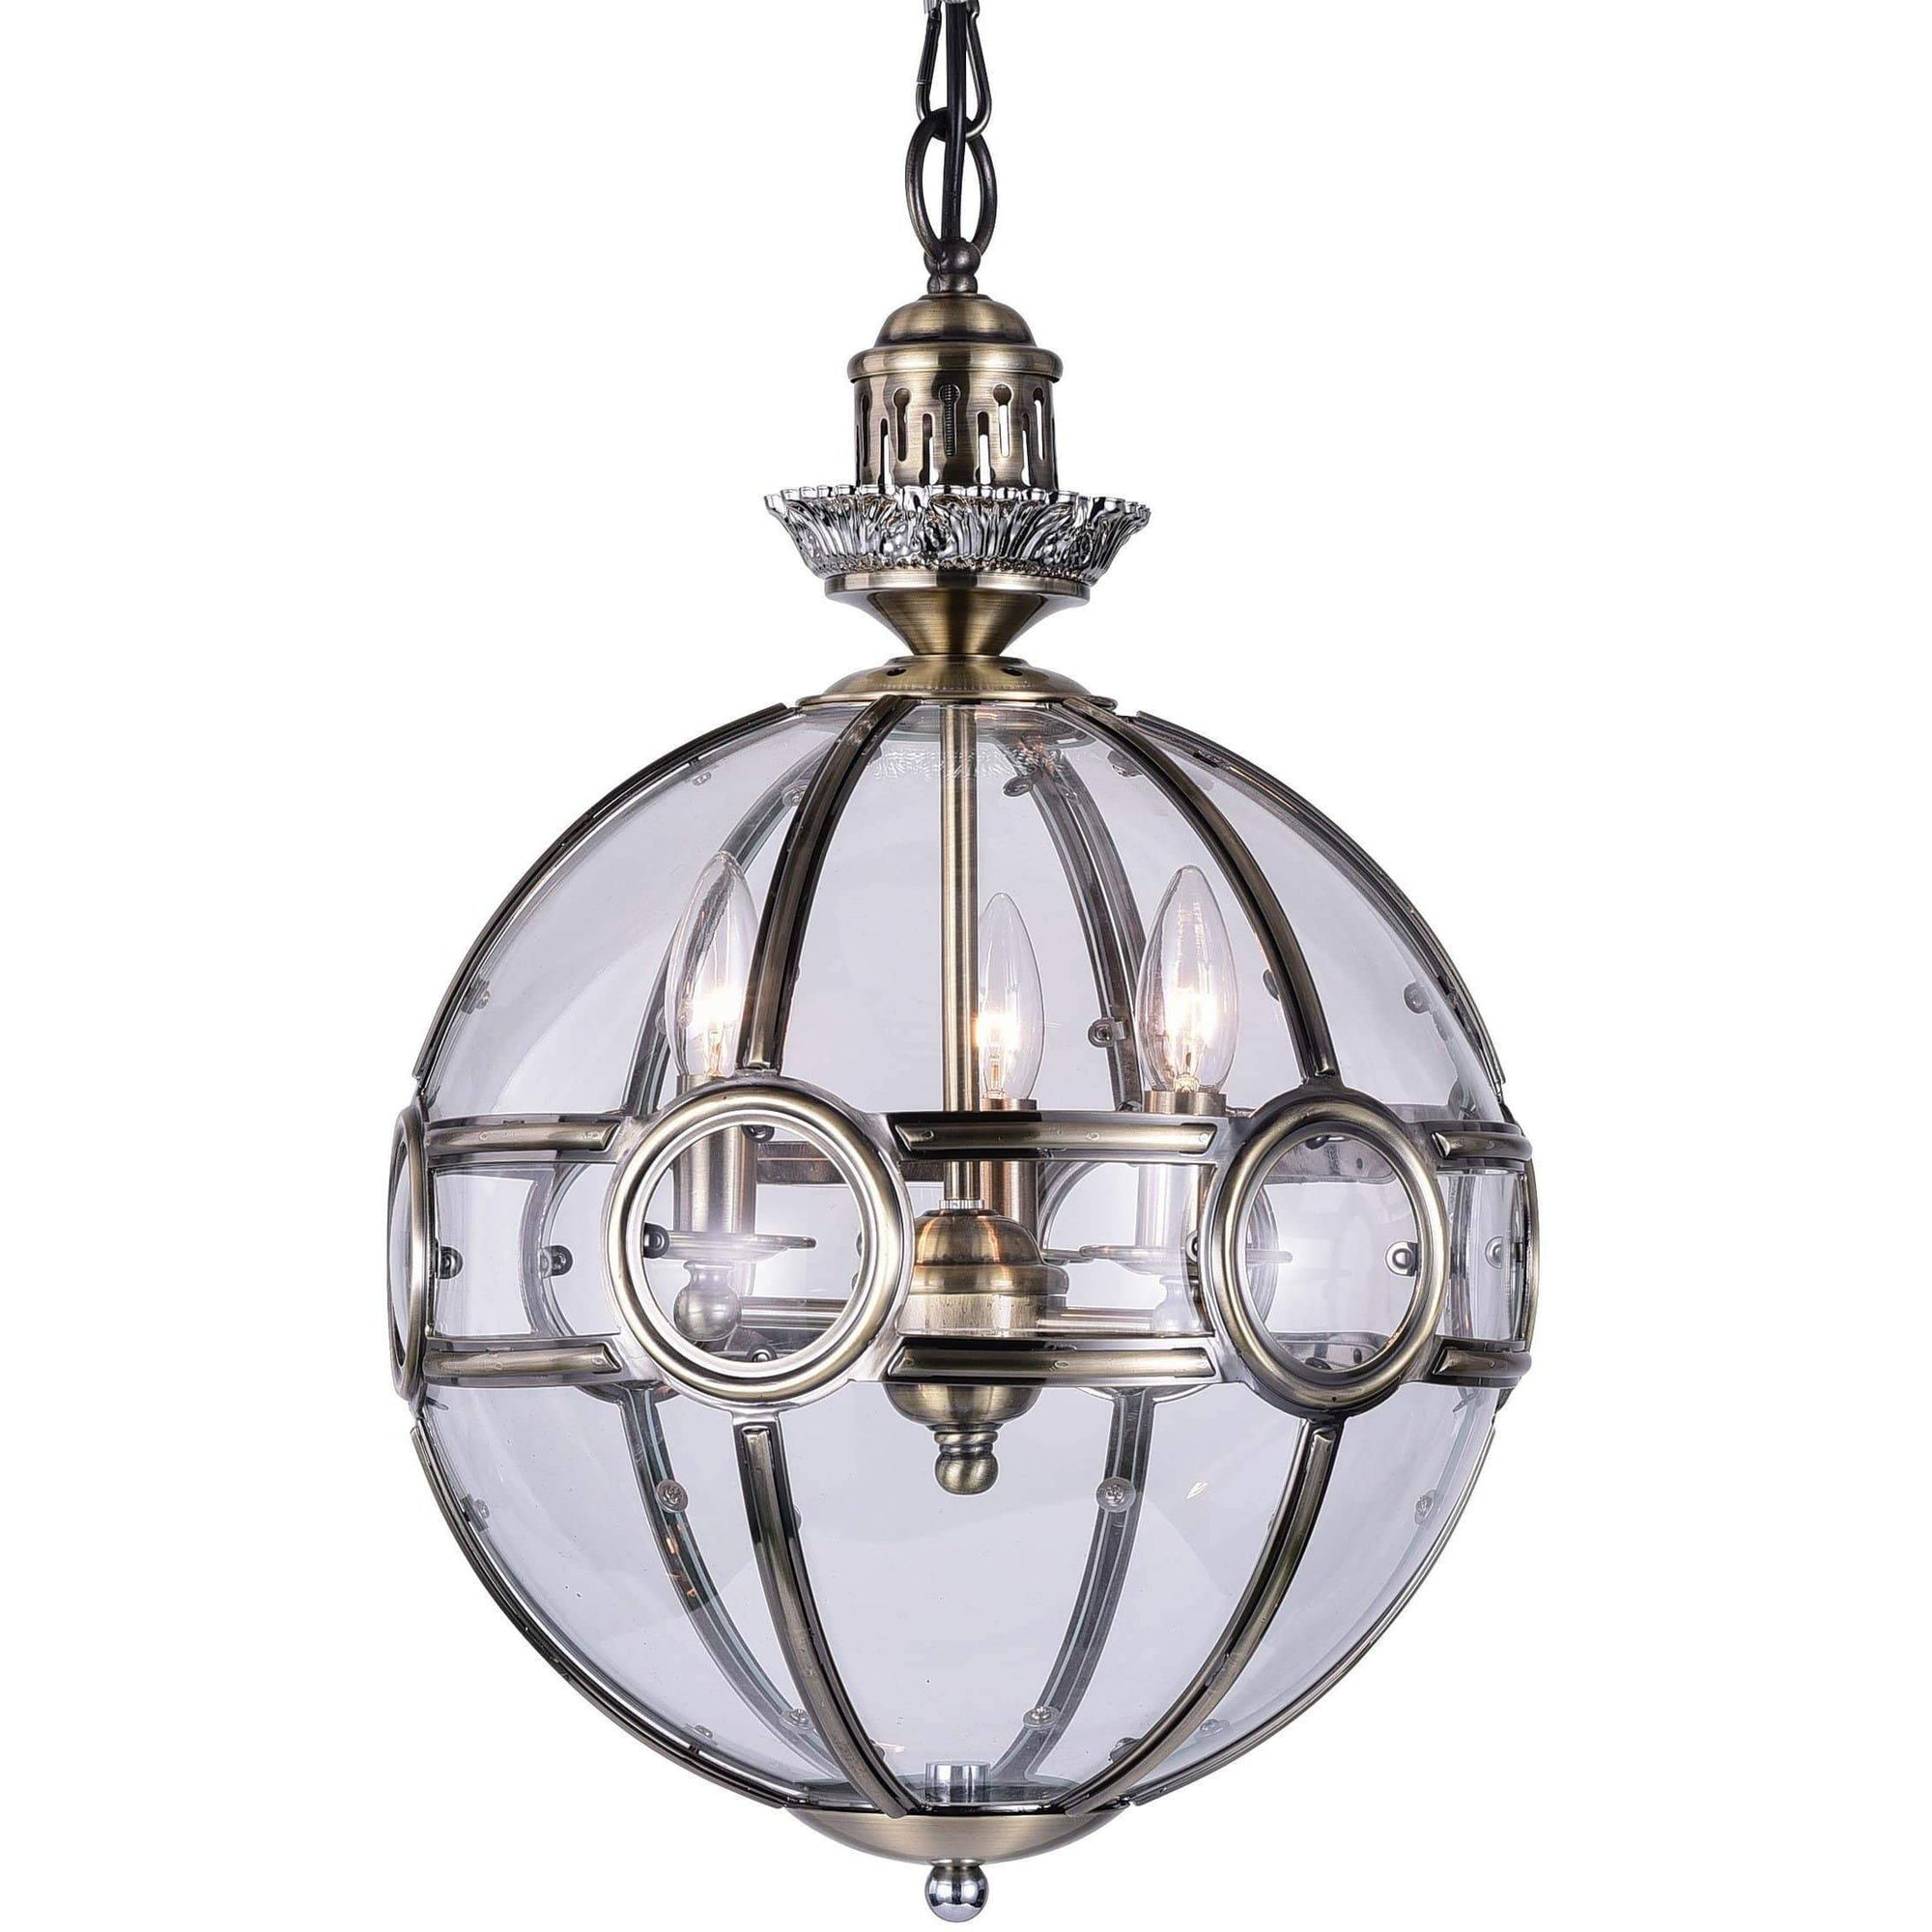 CWI Lighting Pendants Antique Brass Beas 3 Light Chandelier with Antique Brass Finish by CWI Lighting 9696P20-3-604